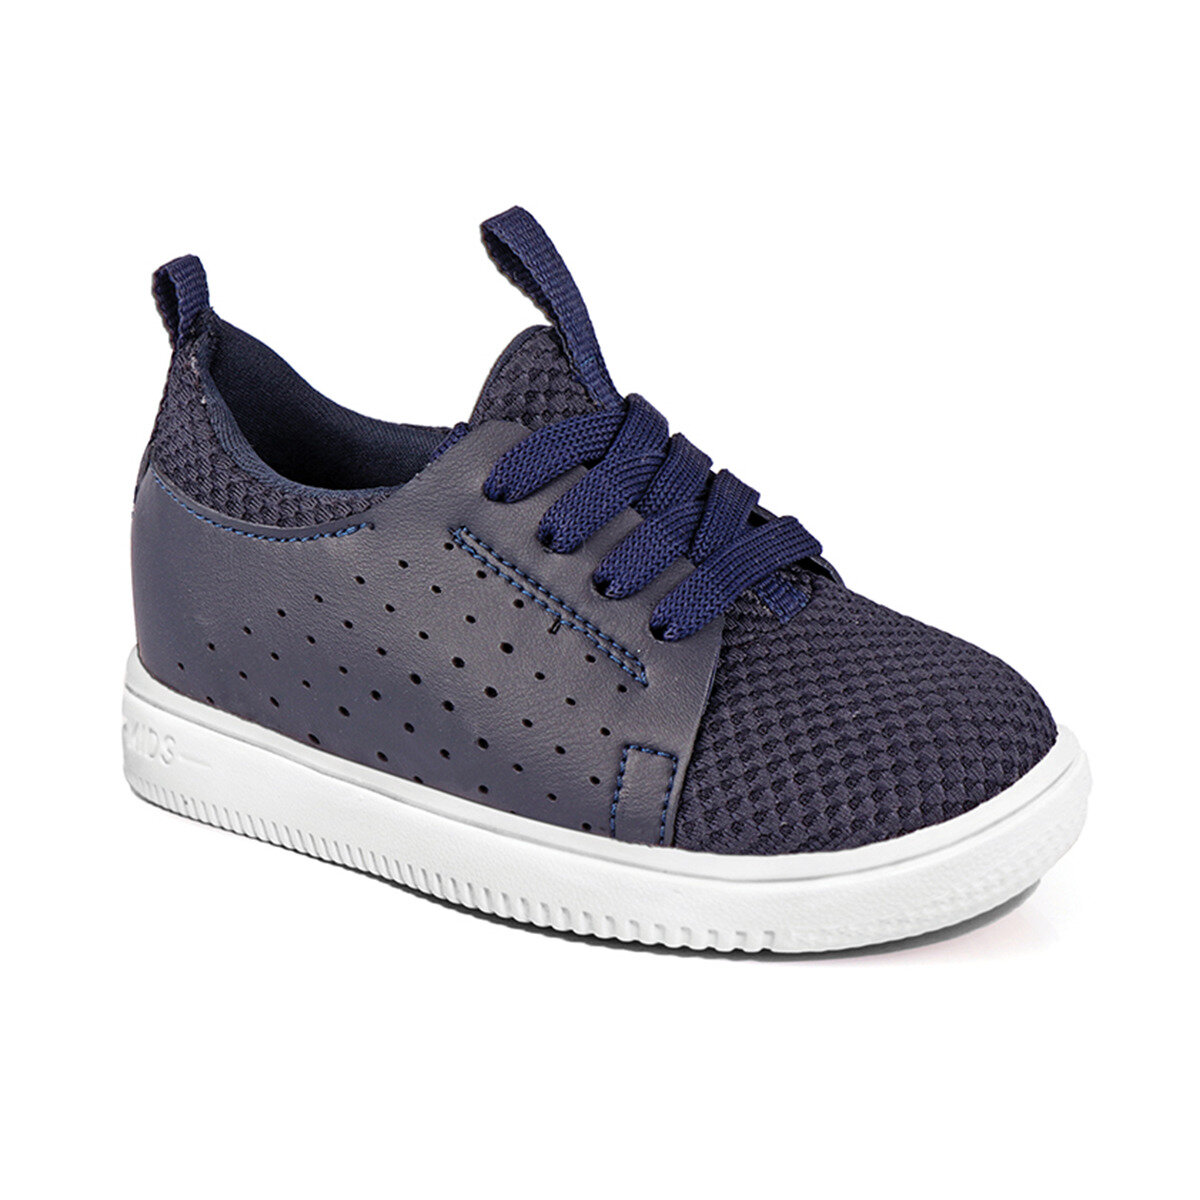 FLO 950.19Y.528 BEBE PHYLON Navy Blue Male Child Thick Soled Sneaker VICCO